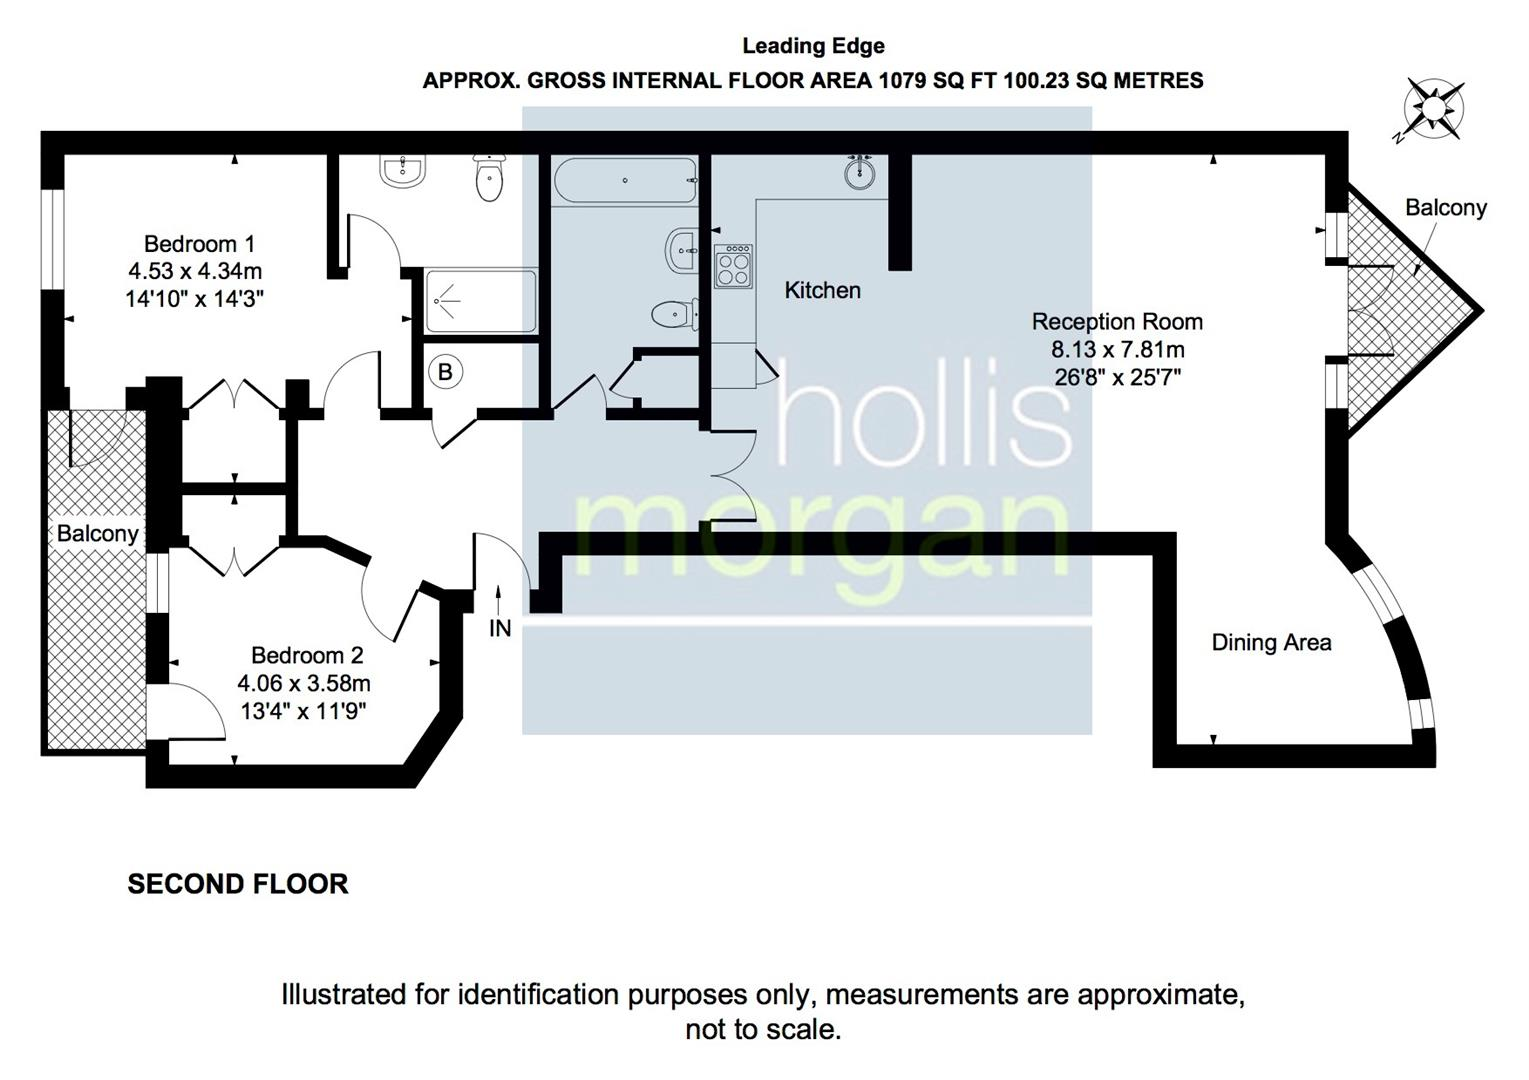 Floorplans For Leading Edge, Hotwells